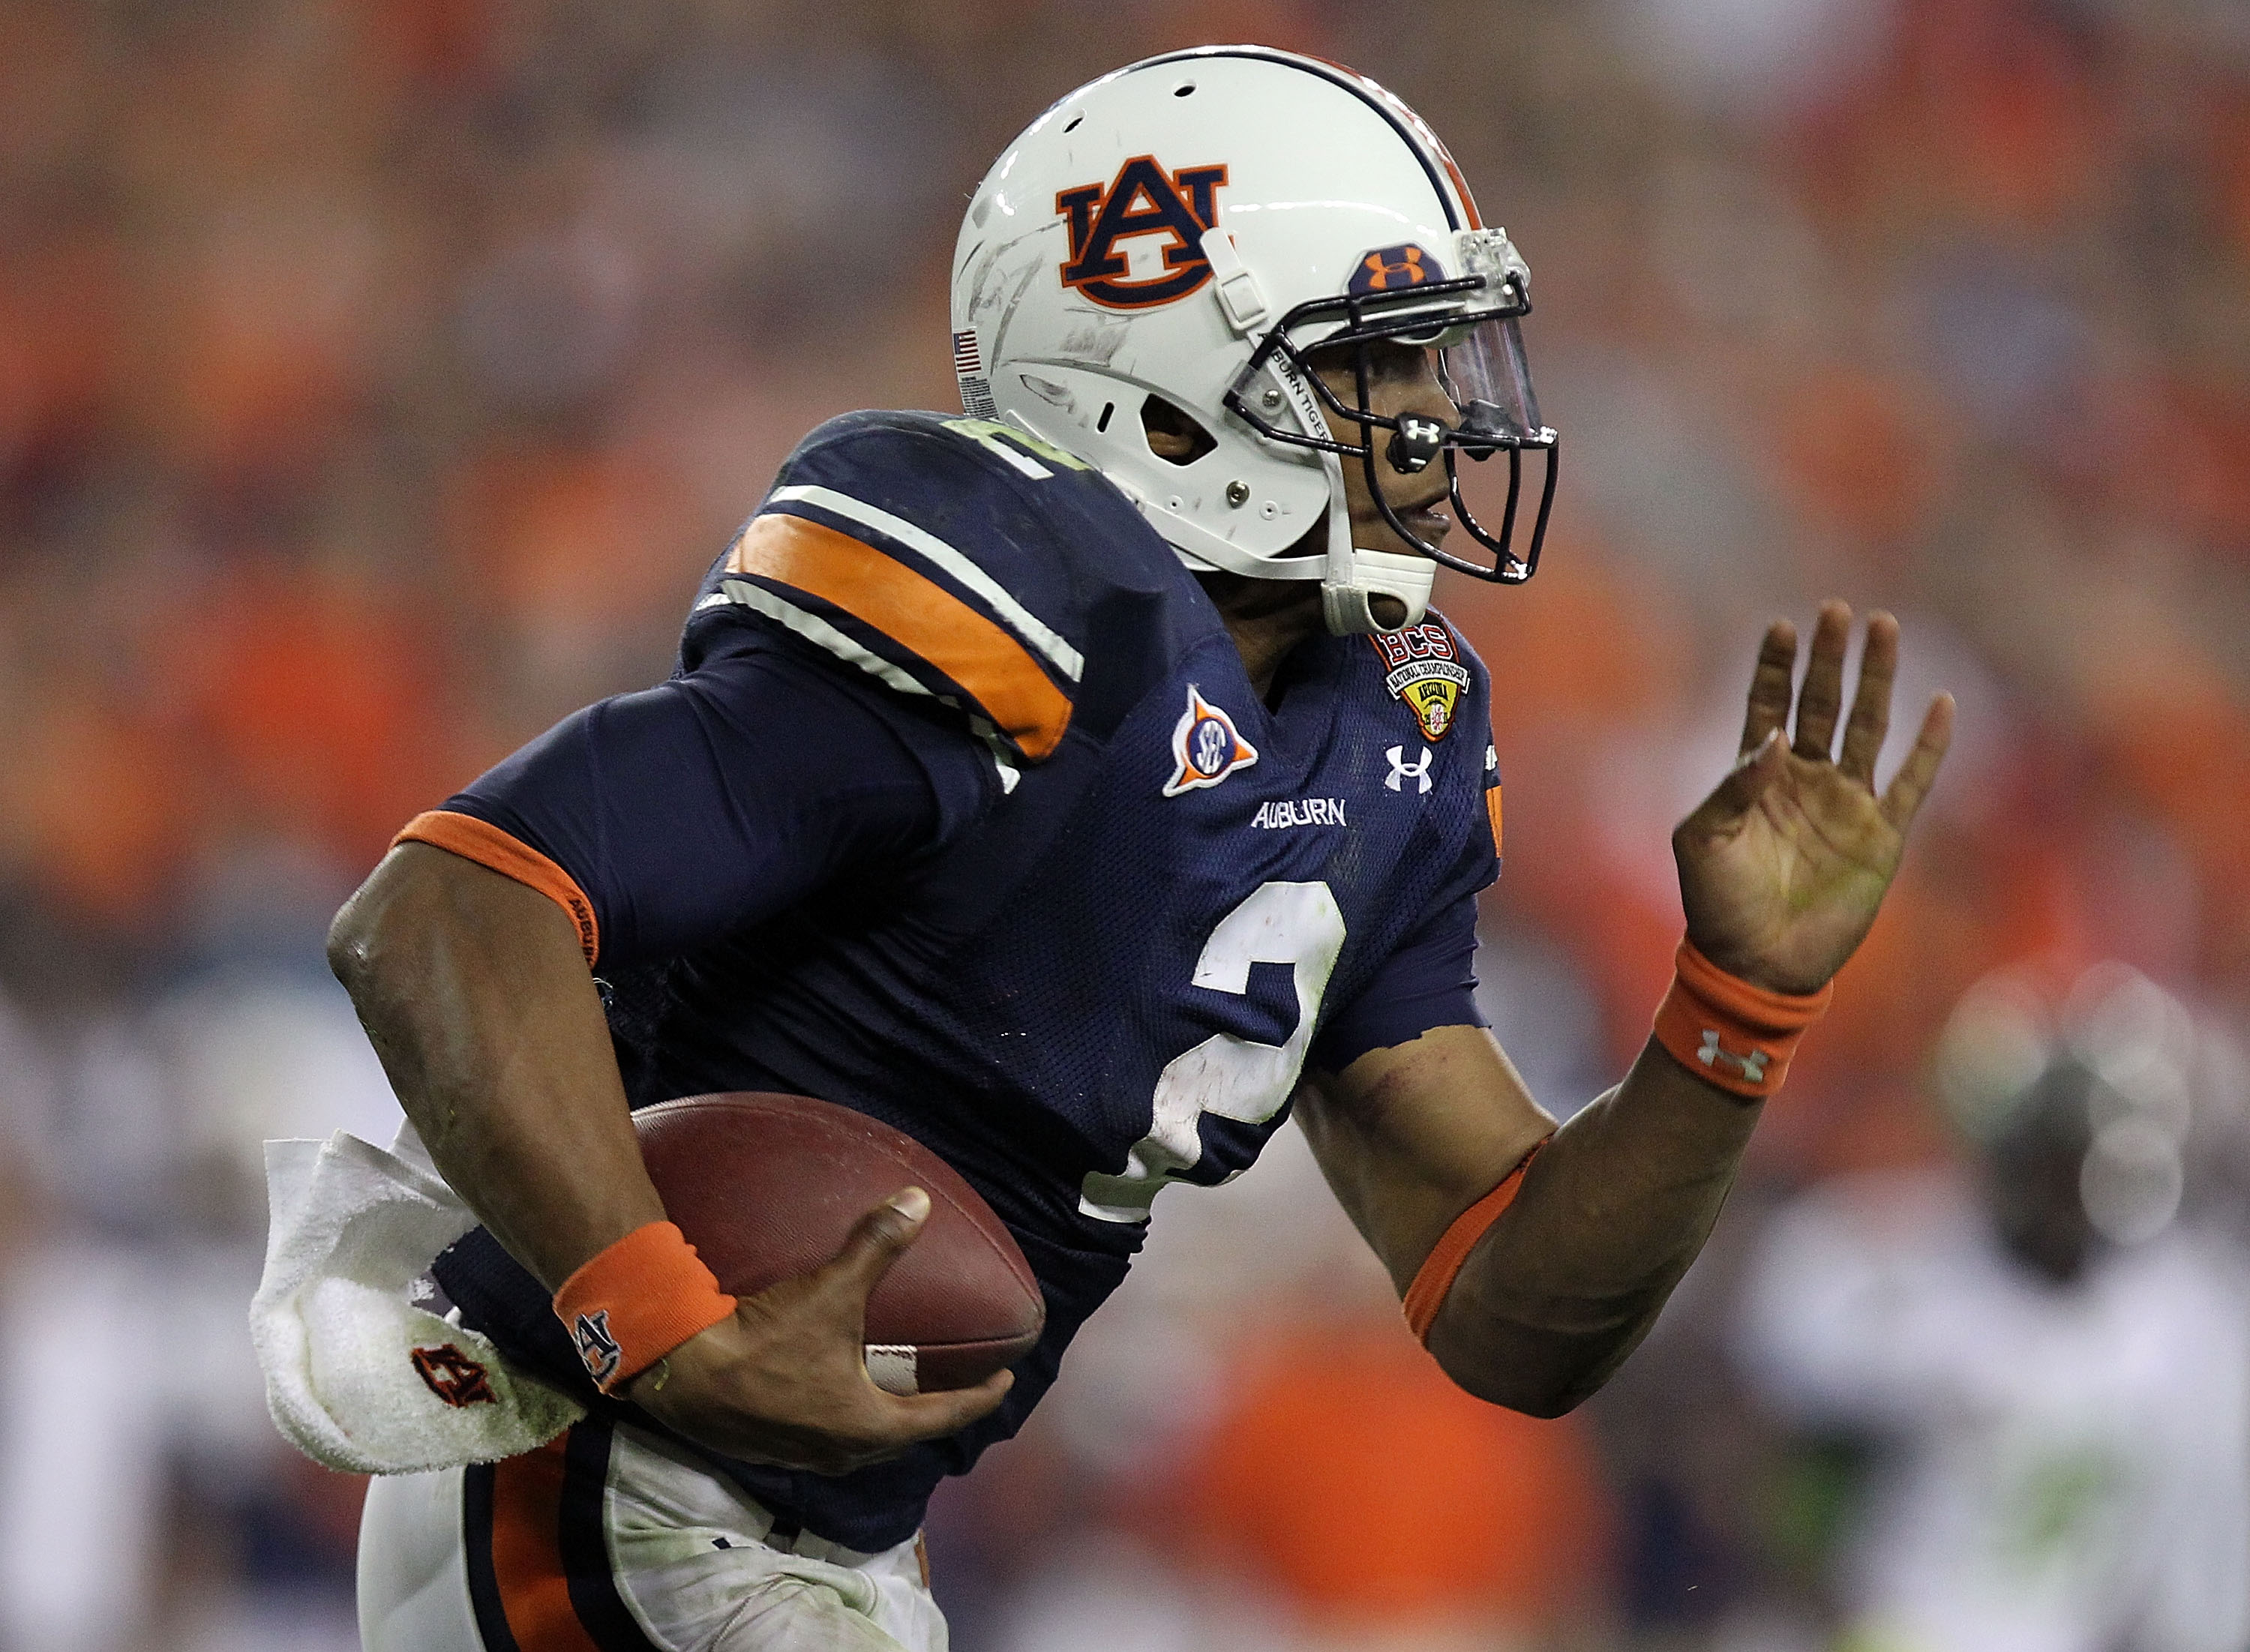 2011 NFL Draft: 10 Bold Predictions About Cam Newton's NFL Career